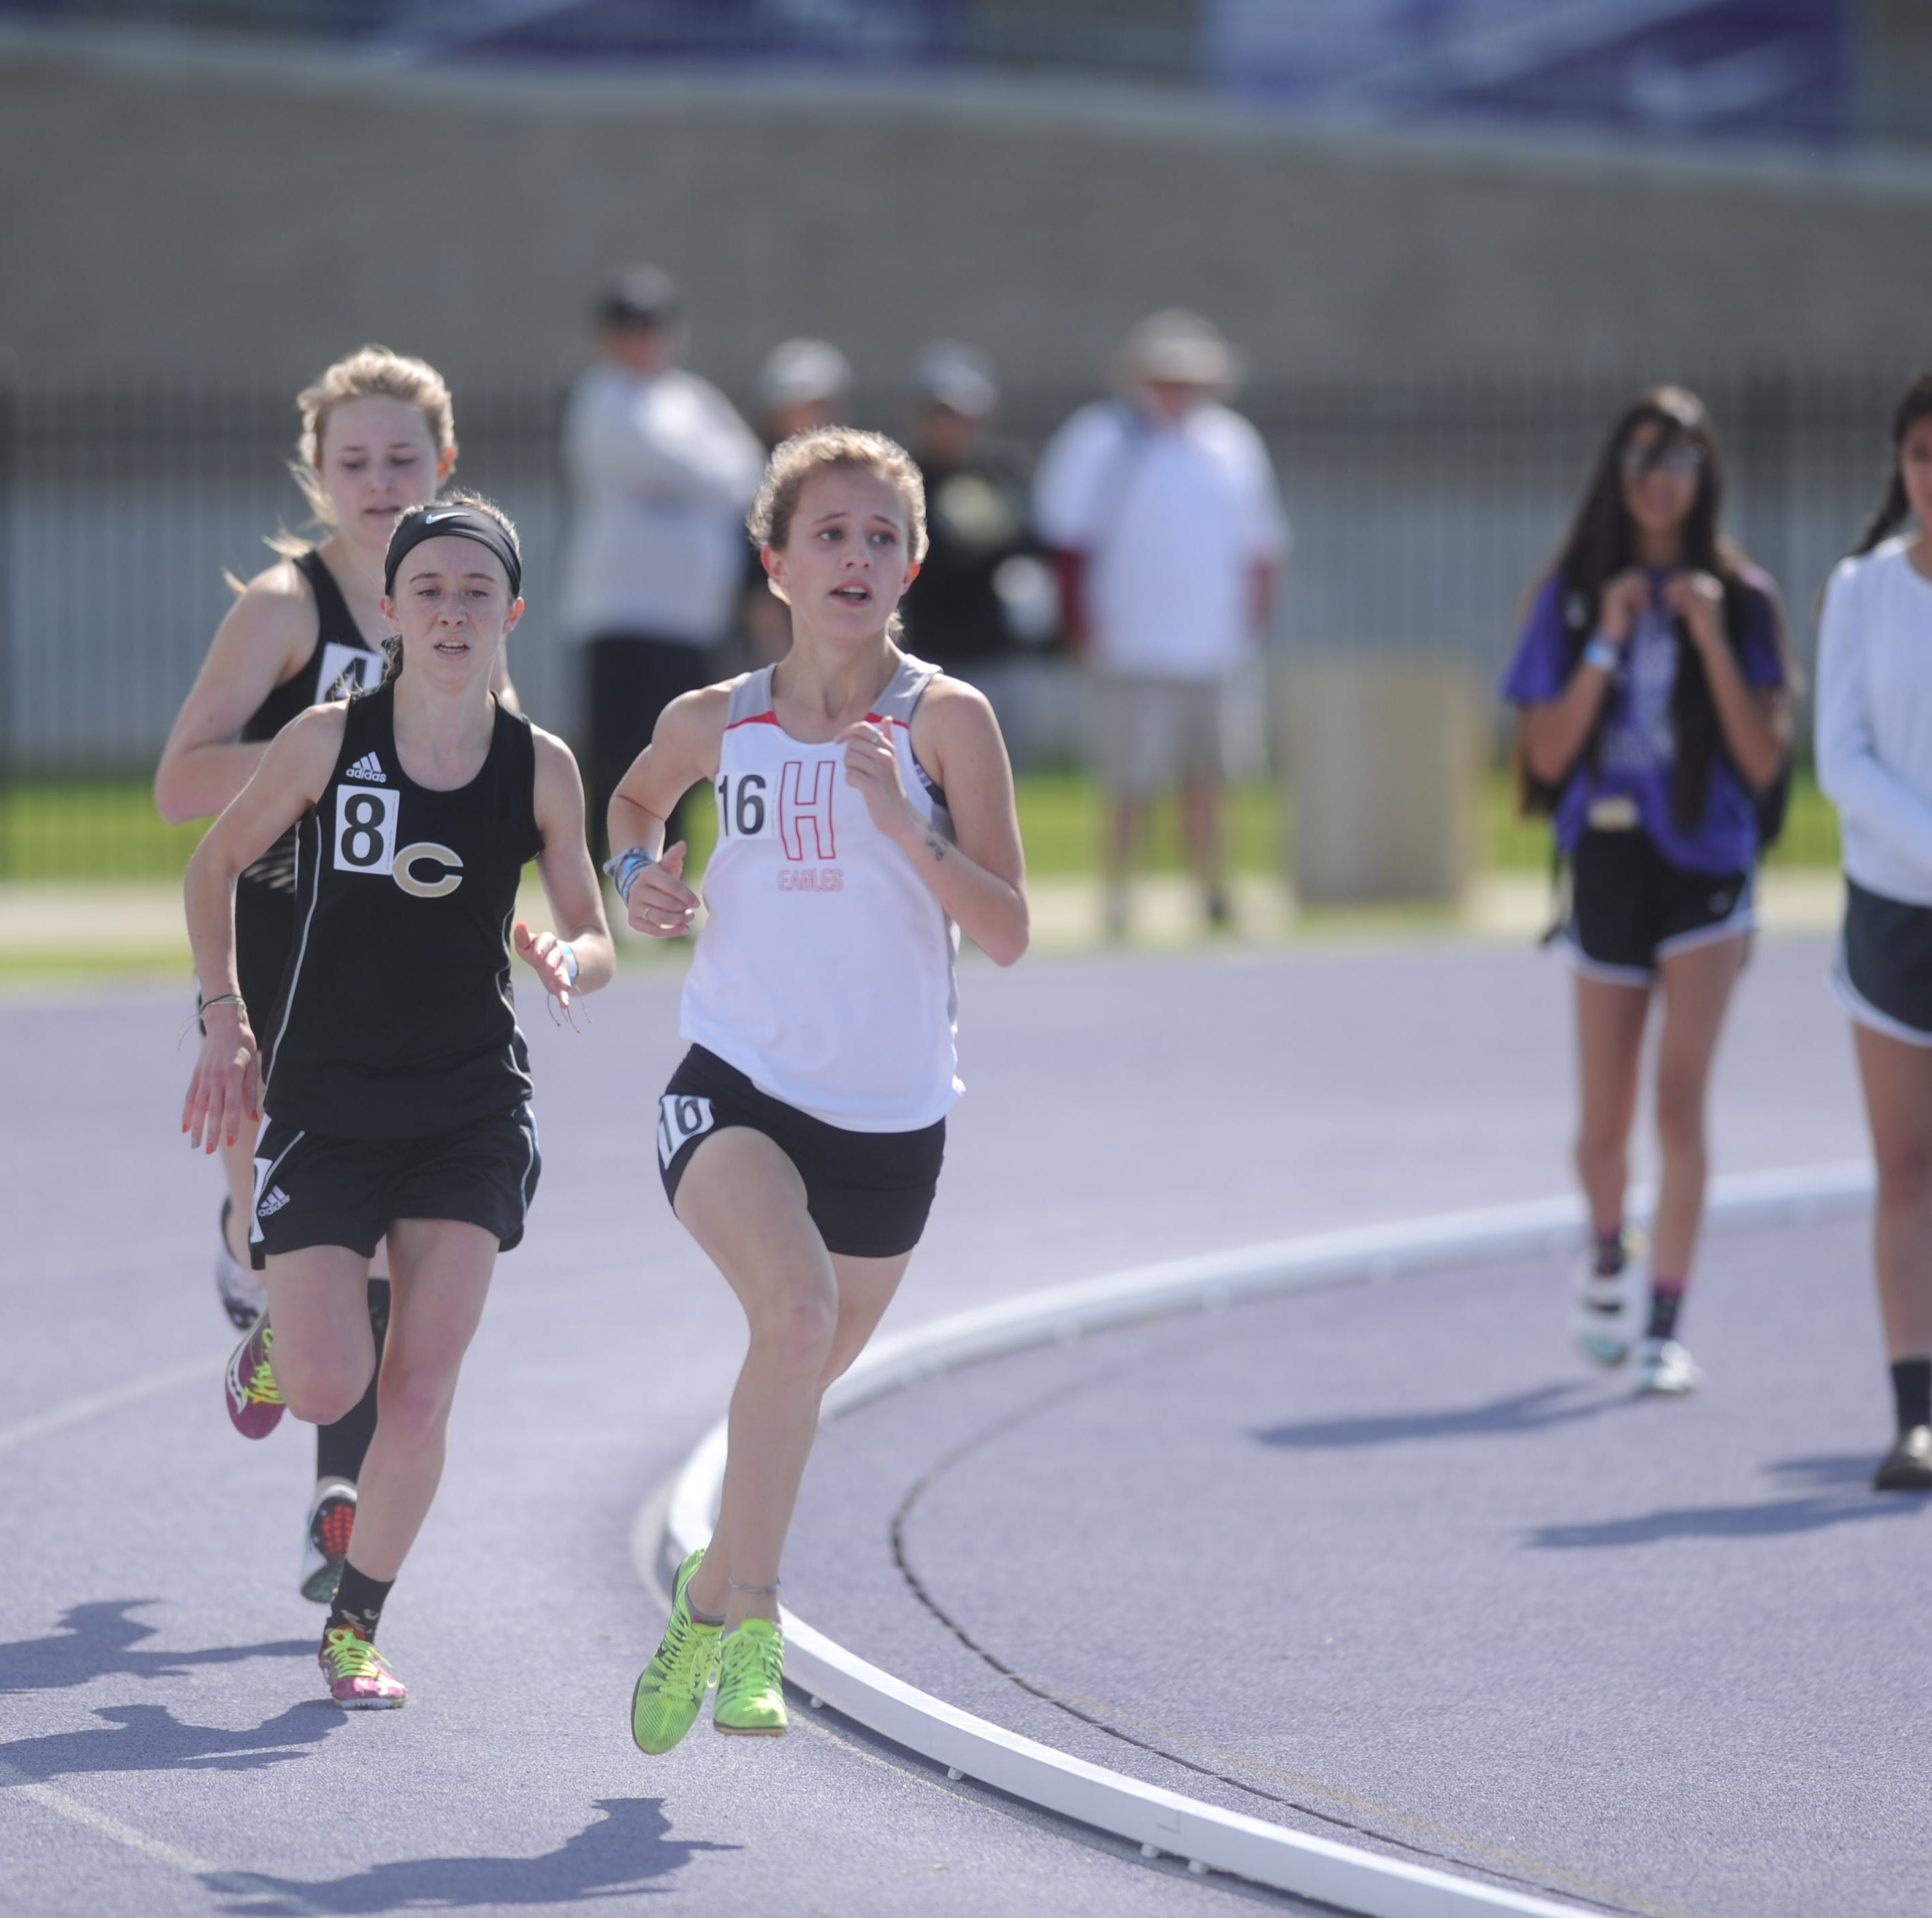 UIL regional track roundup: Four area athletes qualify for 3A state meet